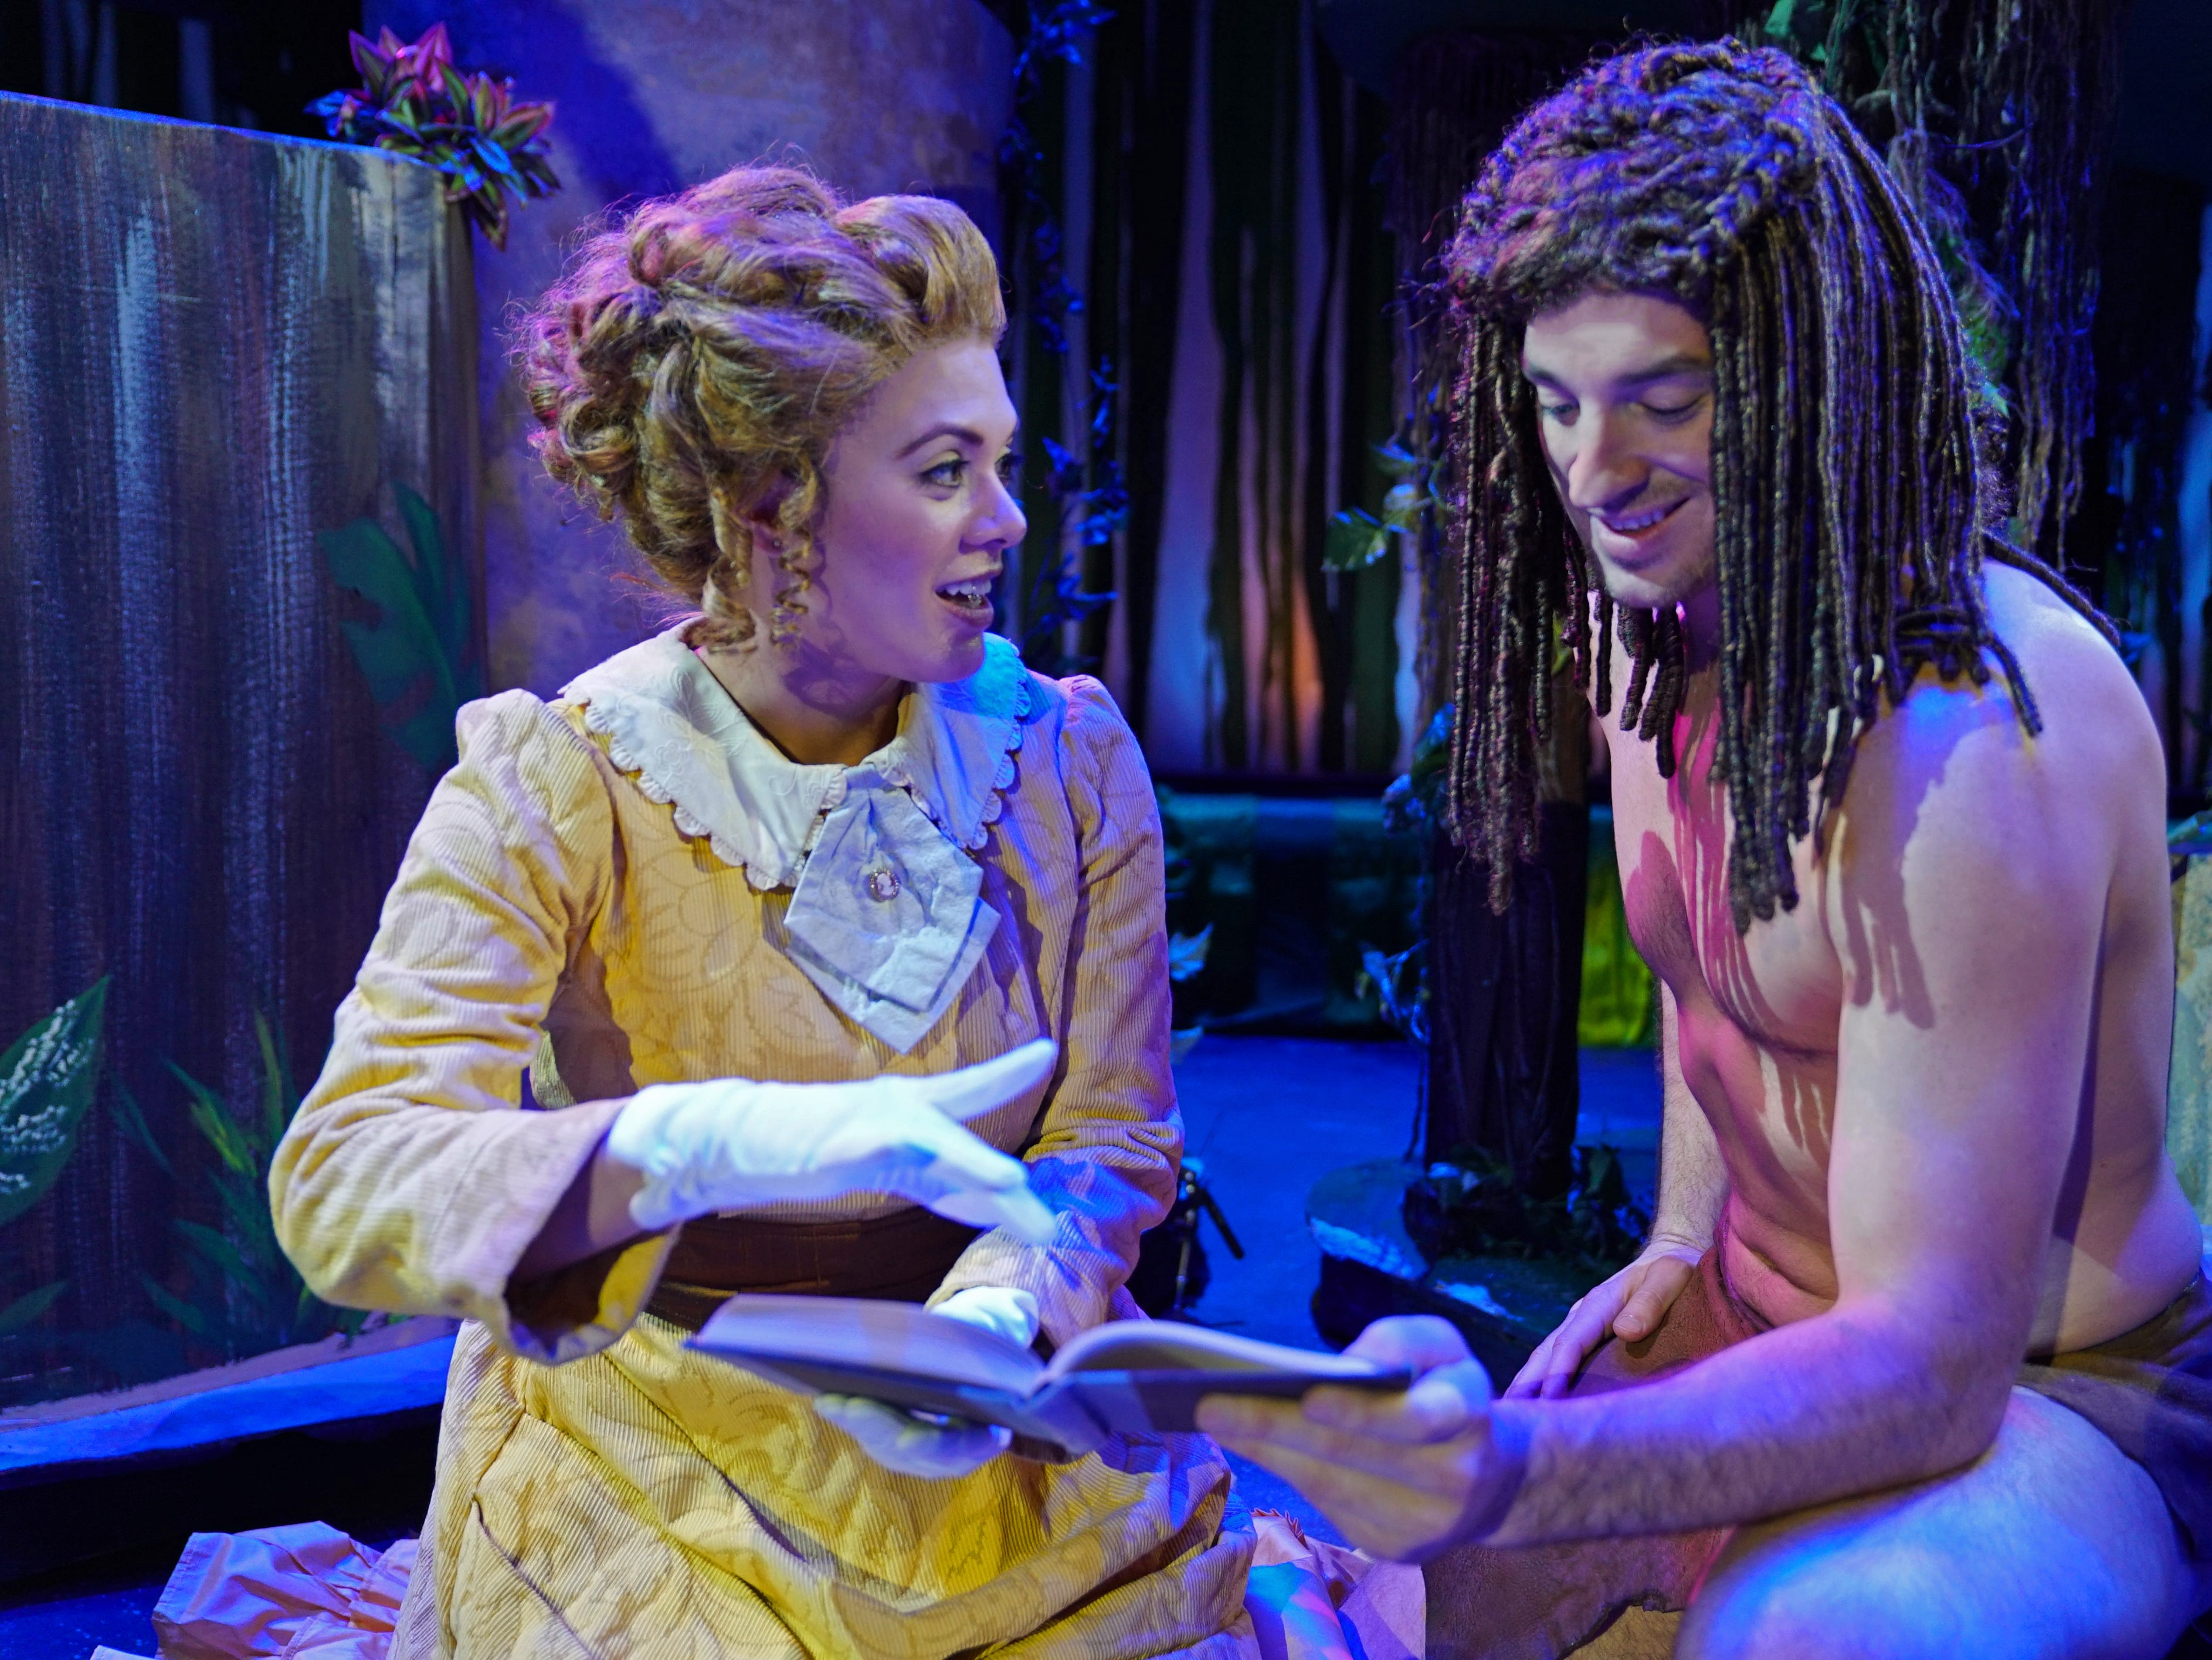 """Corinne Marie plays """"Jane""""  and Joe Horton plays the title role in """"Tarzan,"""" the stage musical based on the Disney film on stage at the Henegar Center in Melbourne through March 24th. For tickets or more information, visit henegar.org"""